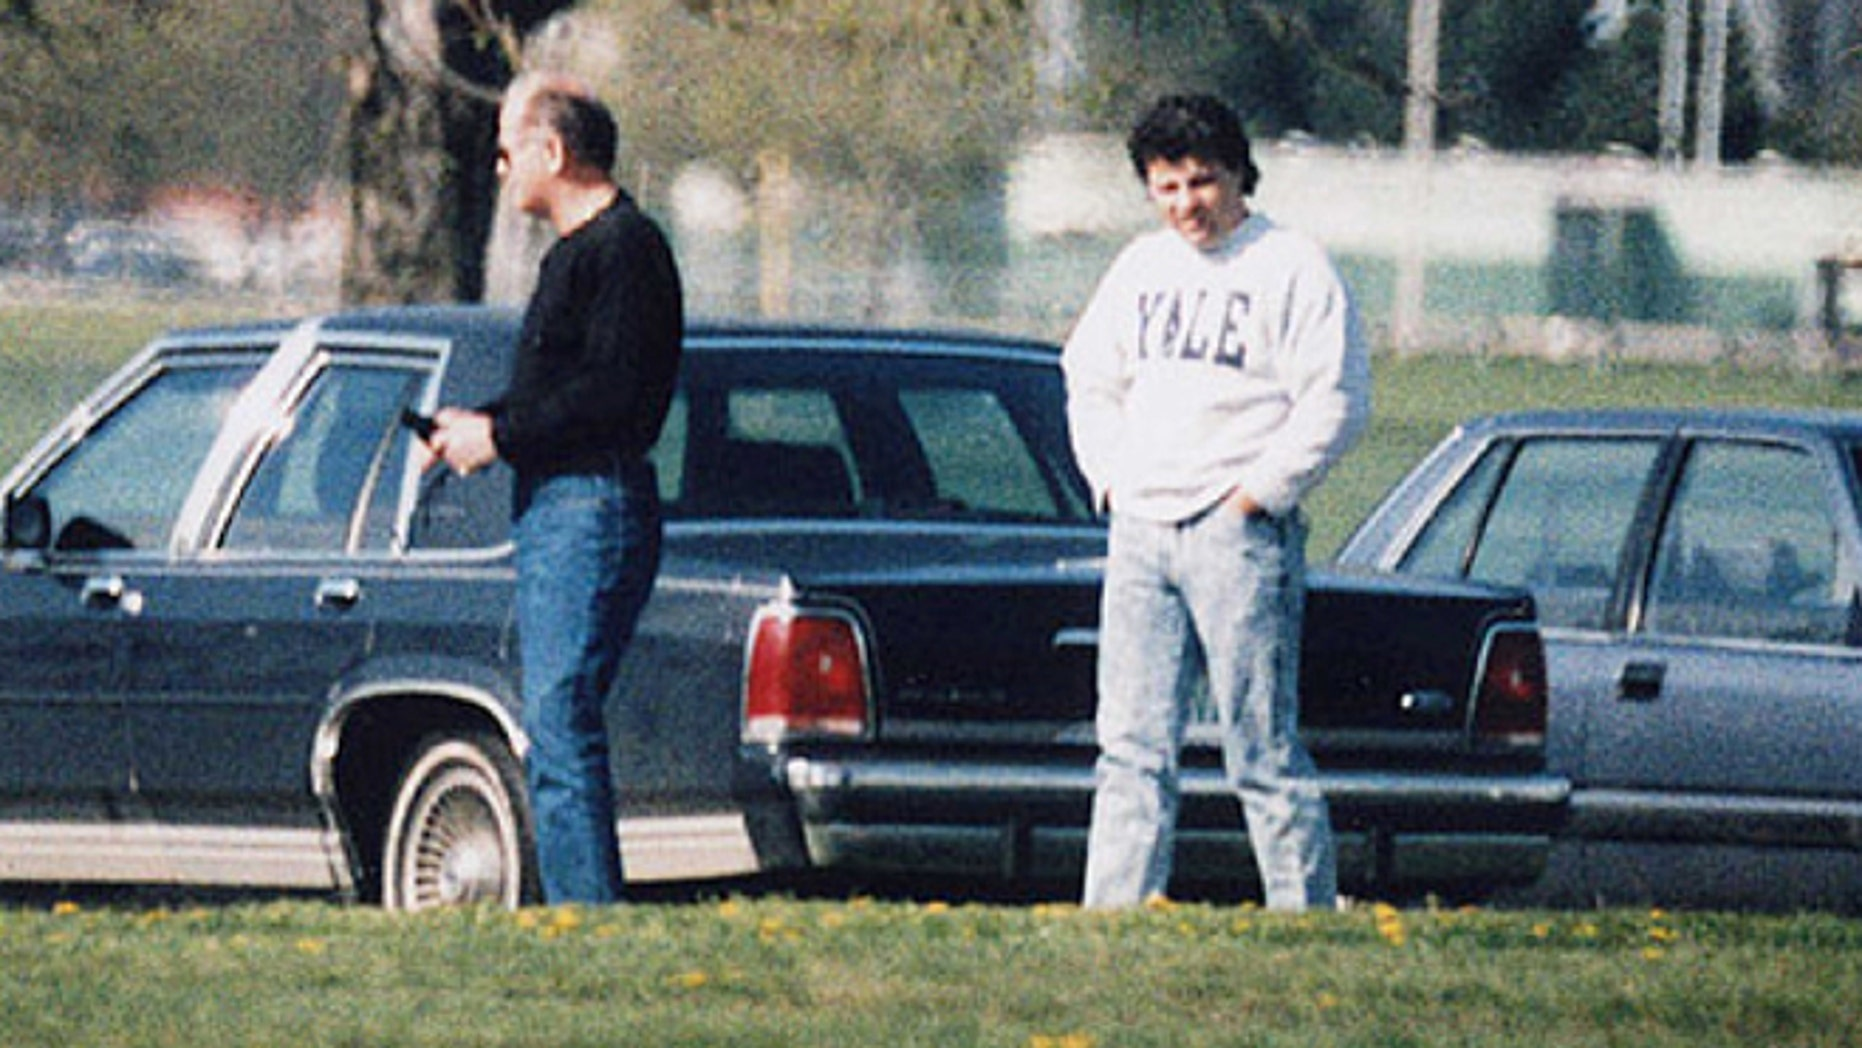 """This undated surveillance photo shows James """"Whitey"""" Bulger, left, with his former right hand man, Kevin Weeks. (AP/U.S. Attorney's Office)"""